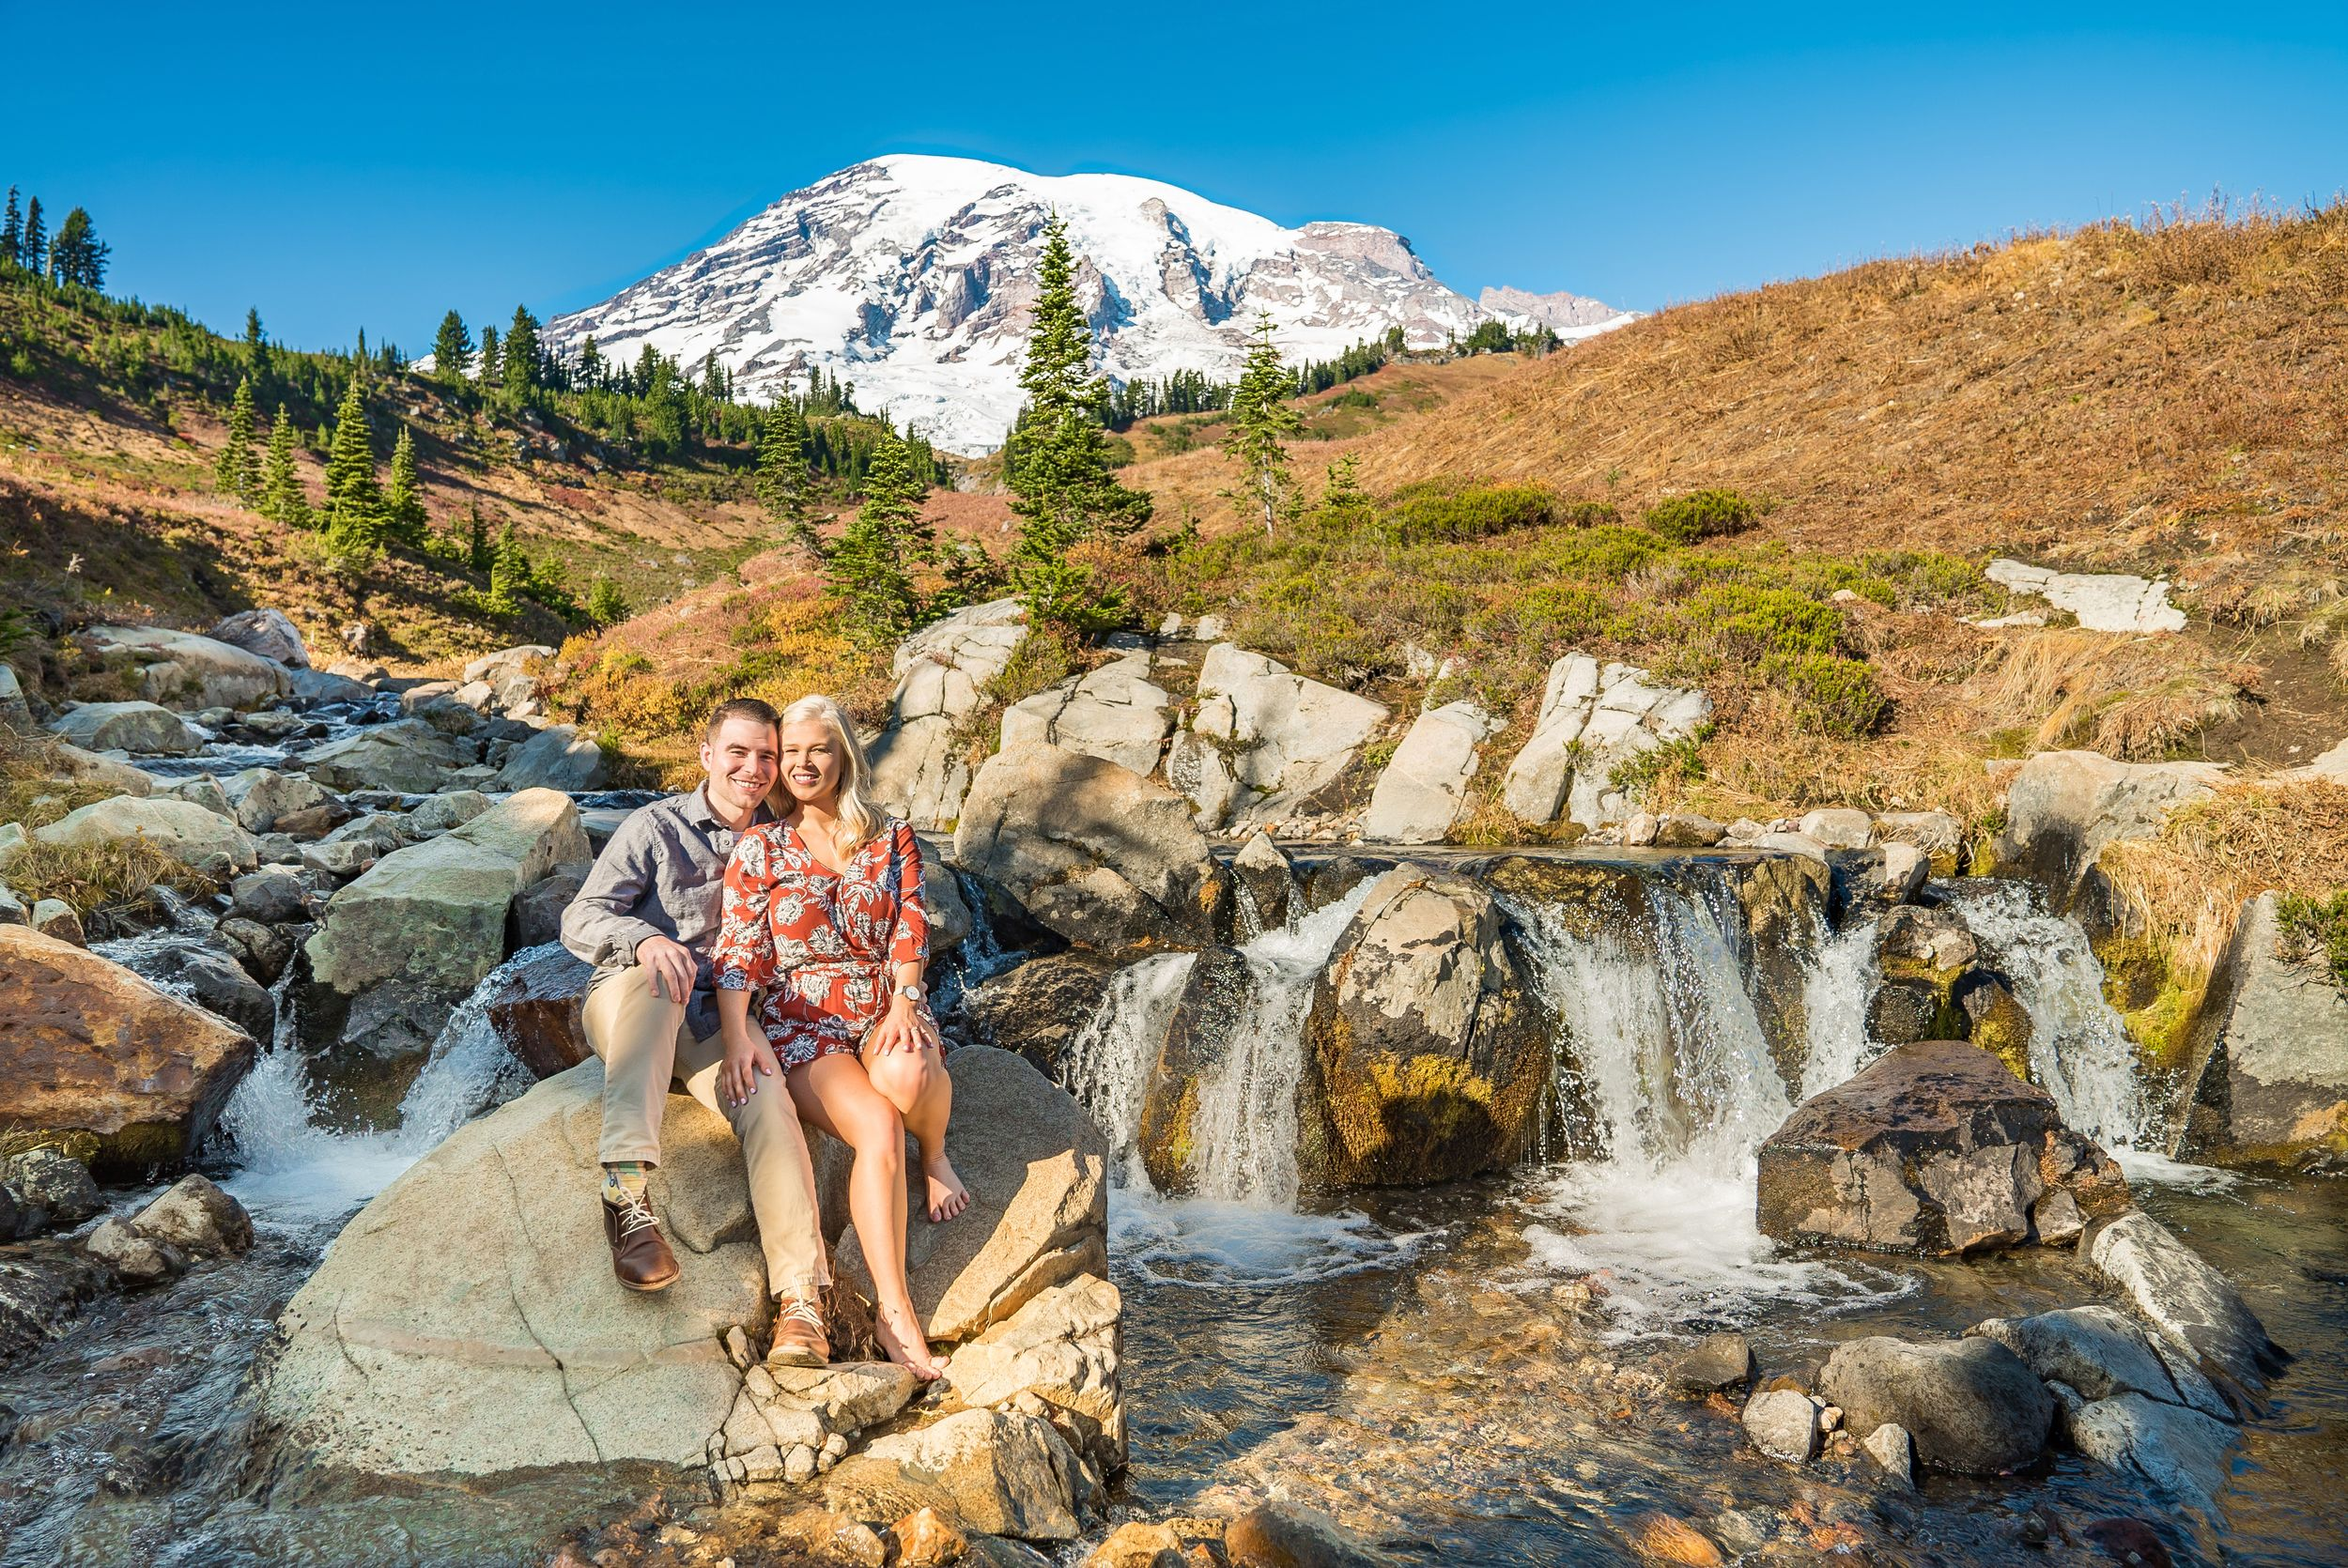 Barefoot portrait at Mt. Rainier - Engagement photography